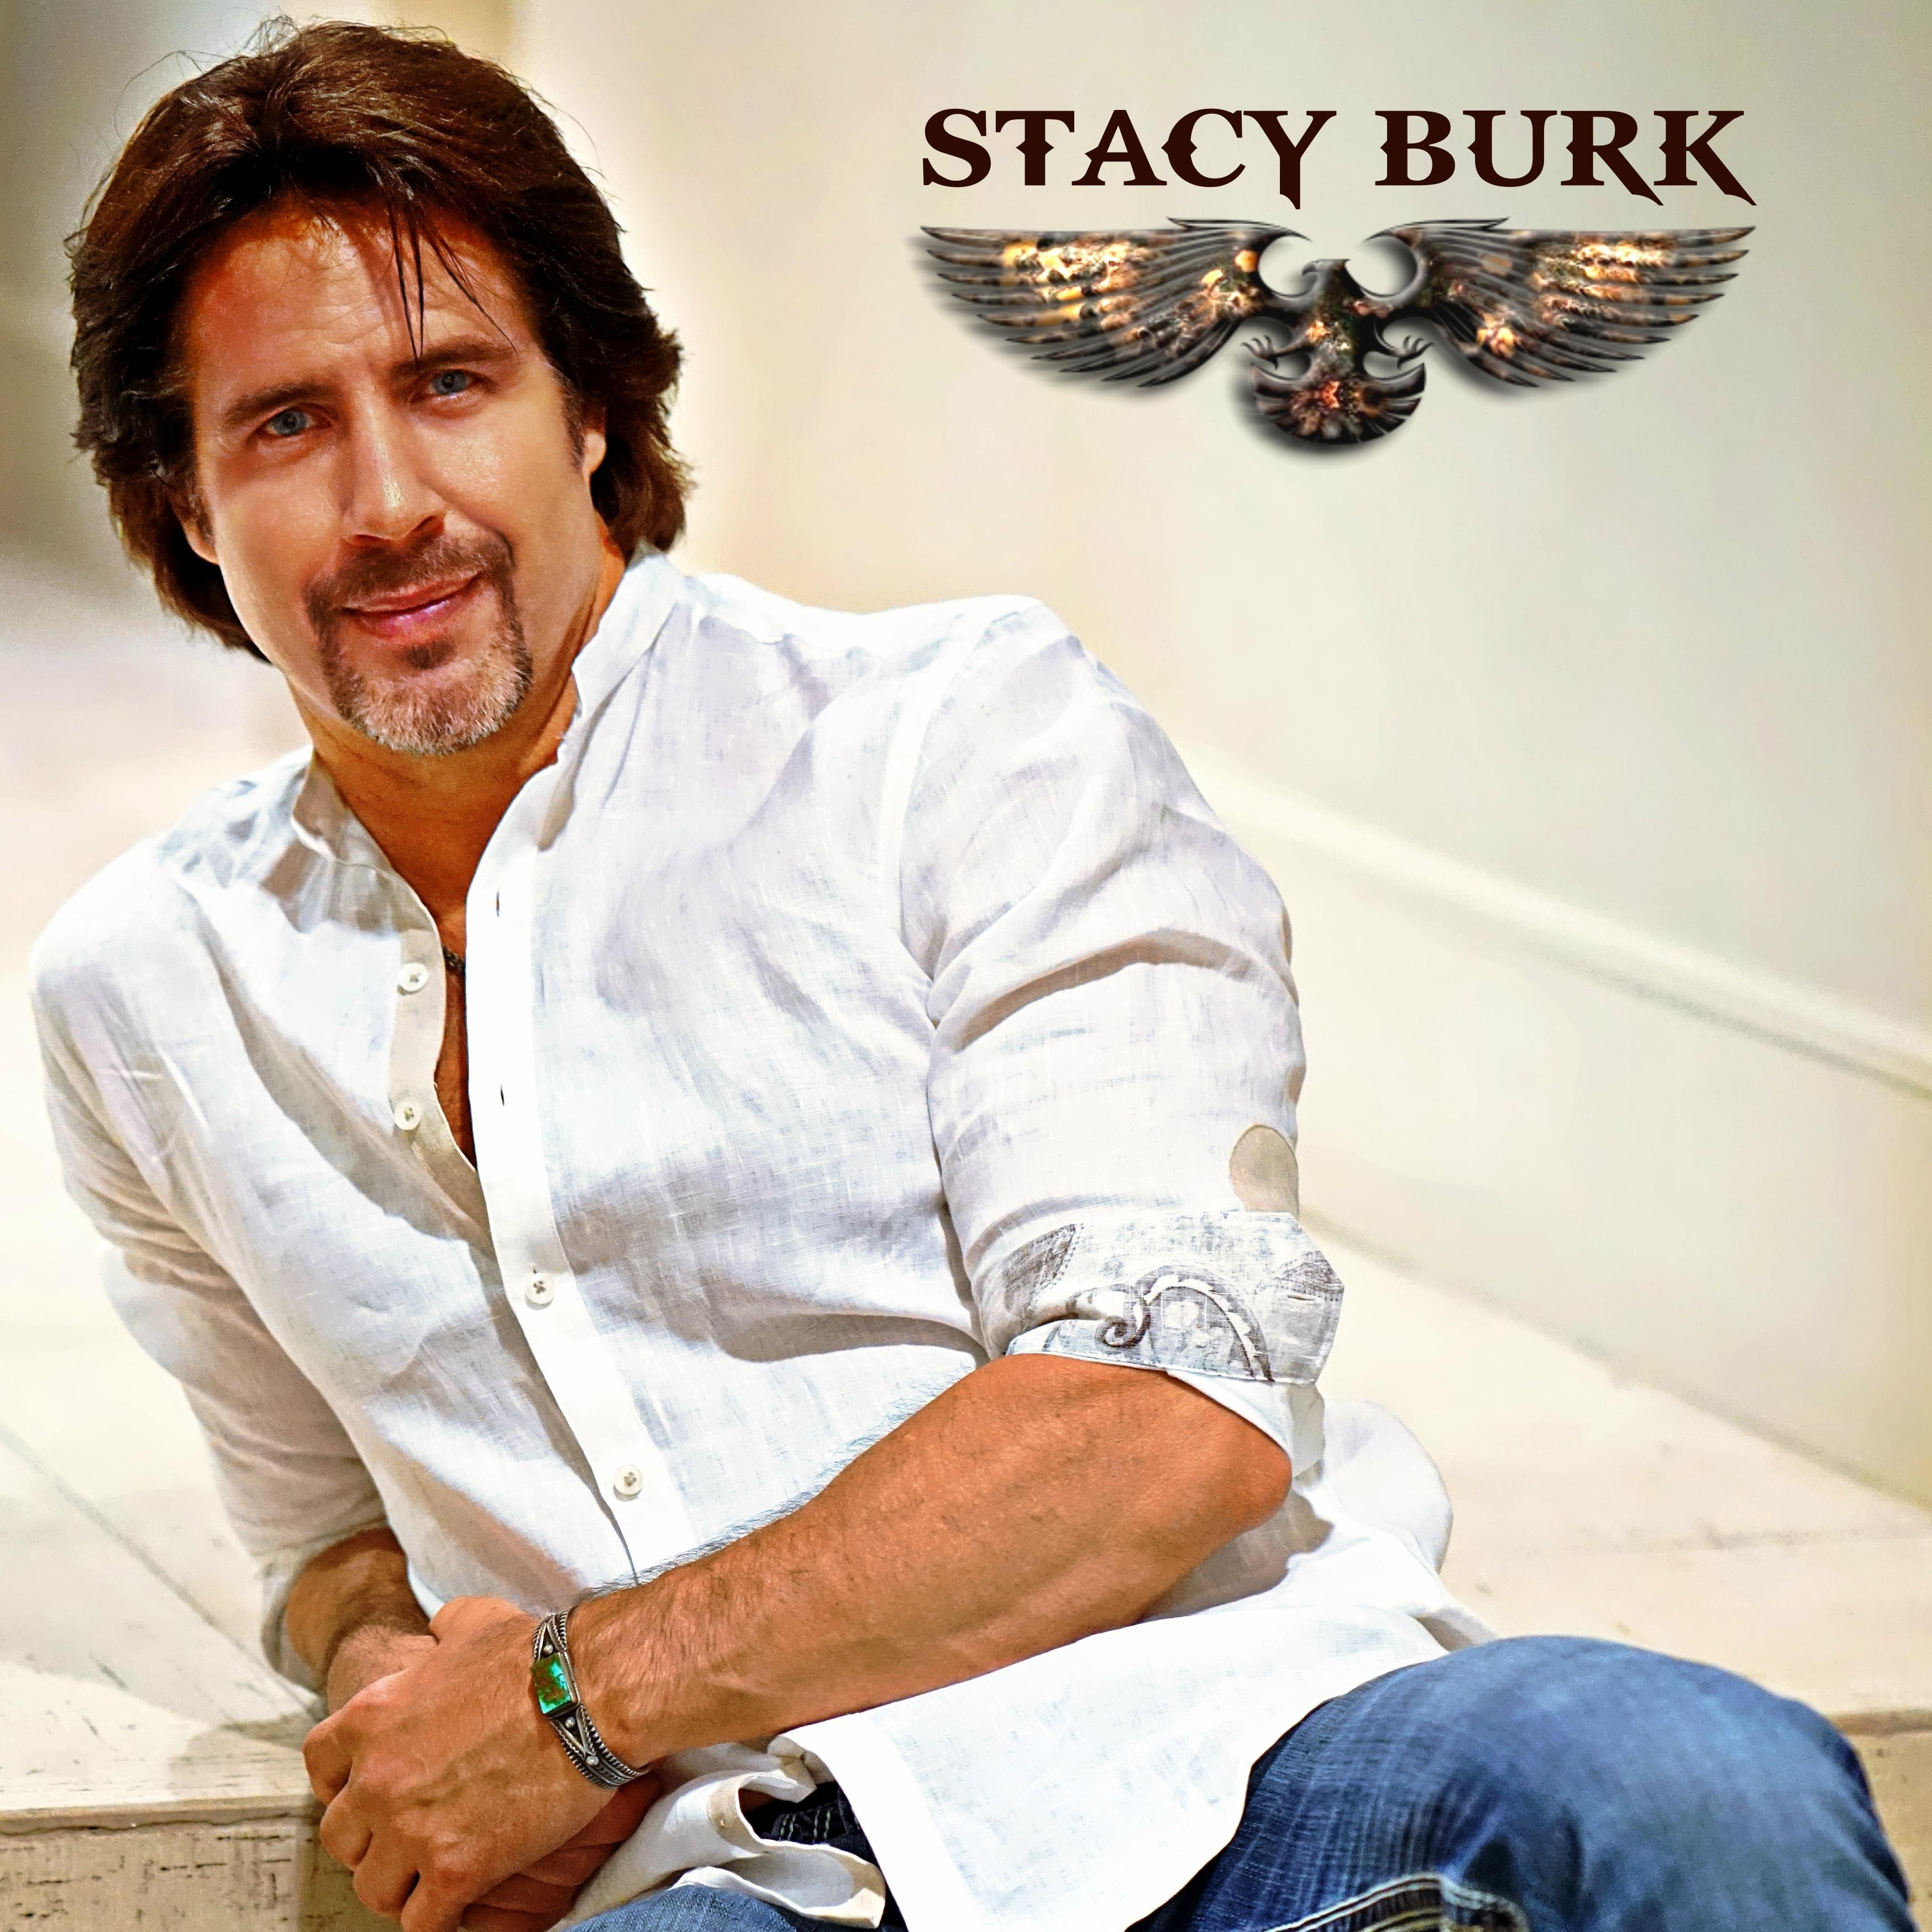 STACY BURK PRODUCTIONS